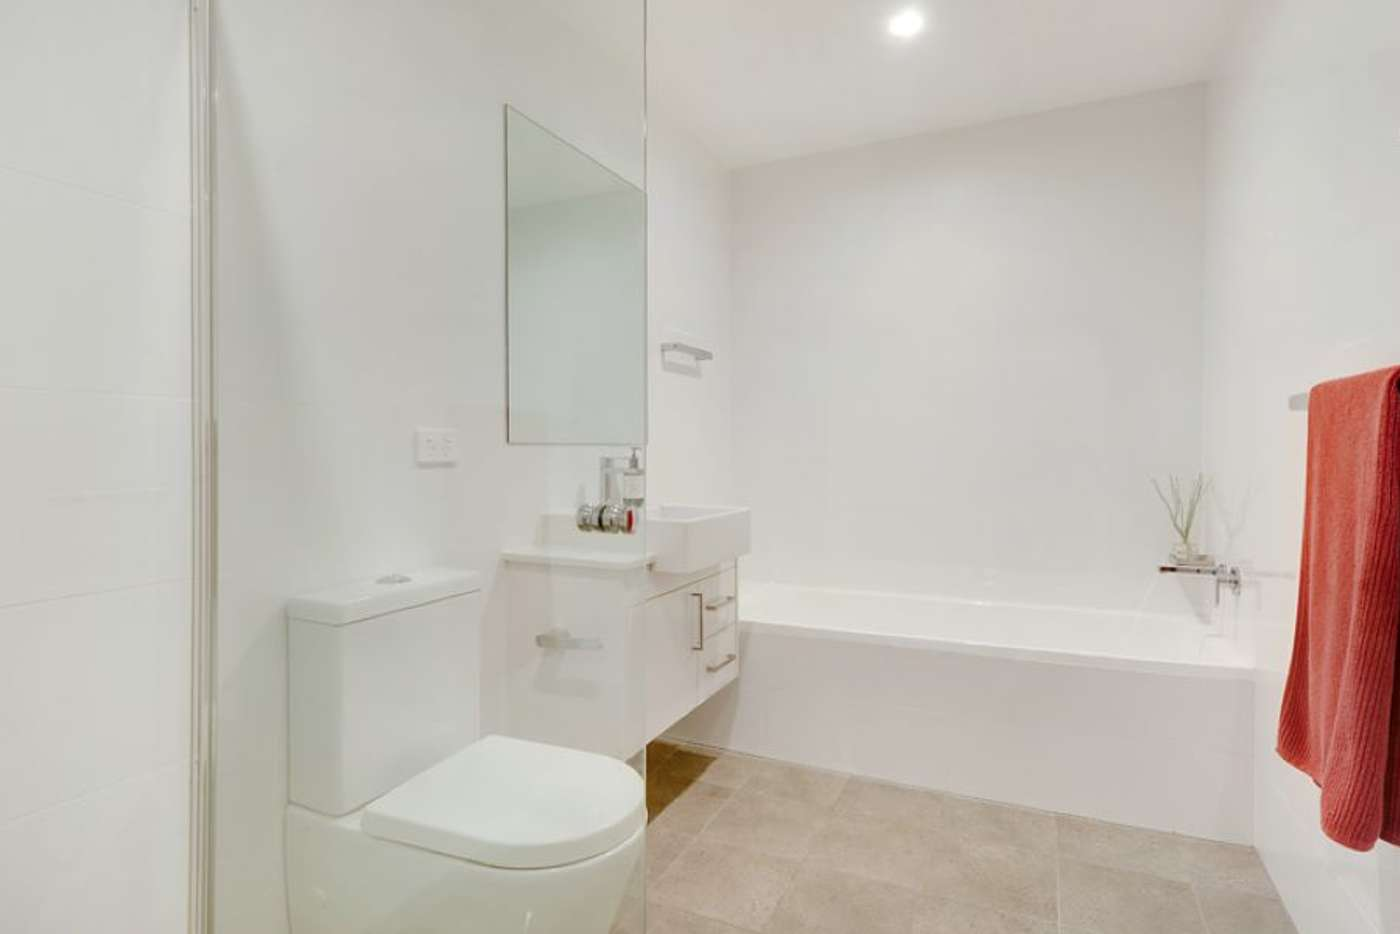 Fifth view of Homely apartment listing, 704/3 Pretoria Parade, Hornsby NSW 2077